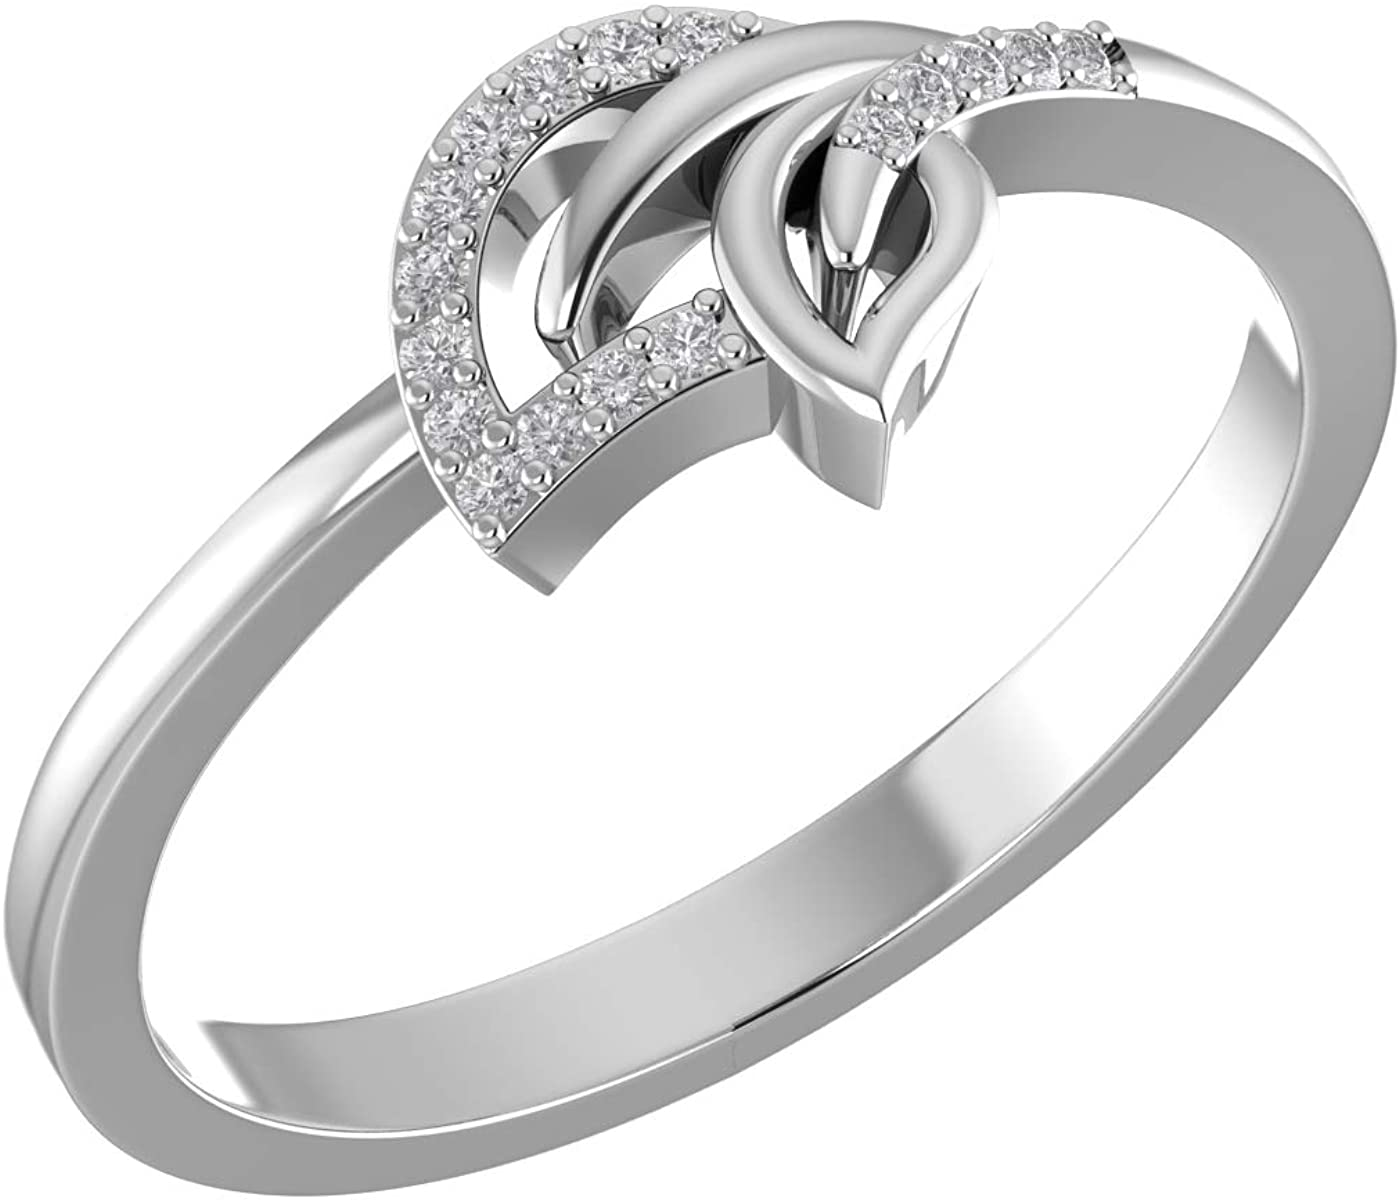 Amayra Diamond Ring 0.06 CTW-17 Natural Round Stones Set in 925 Sterling Silver- Brilliant Cut- Perfect for Bridal Promise Ring,Anniversary,Daily wear or Parties (Color-GH Clarity-VS-SI)